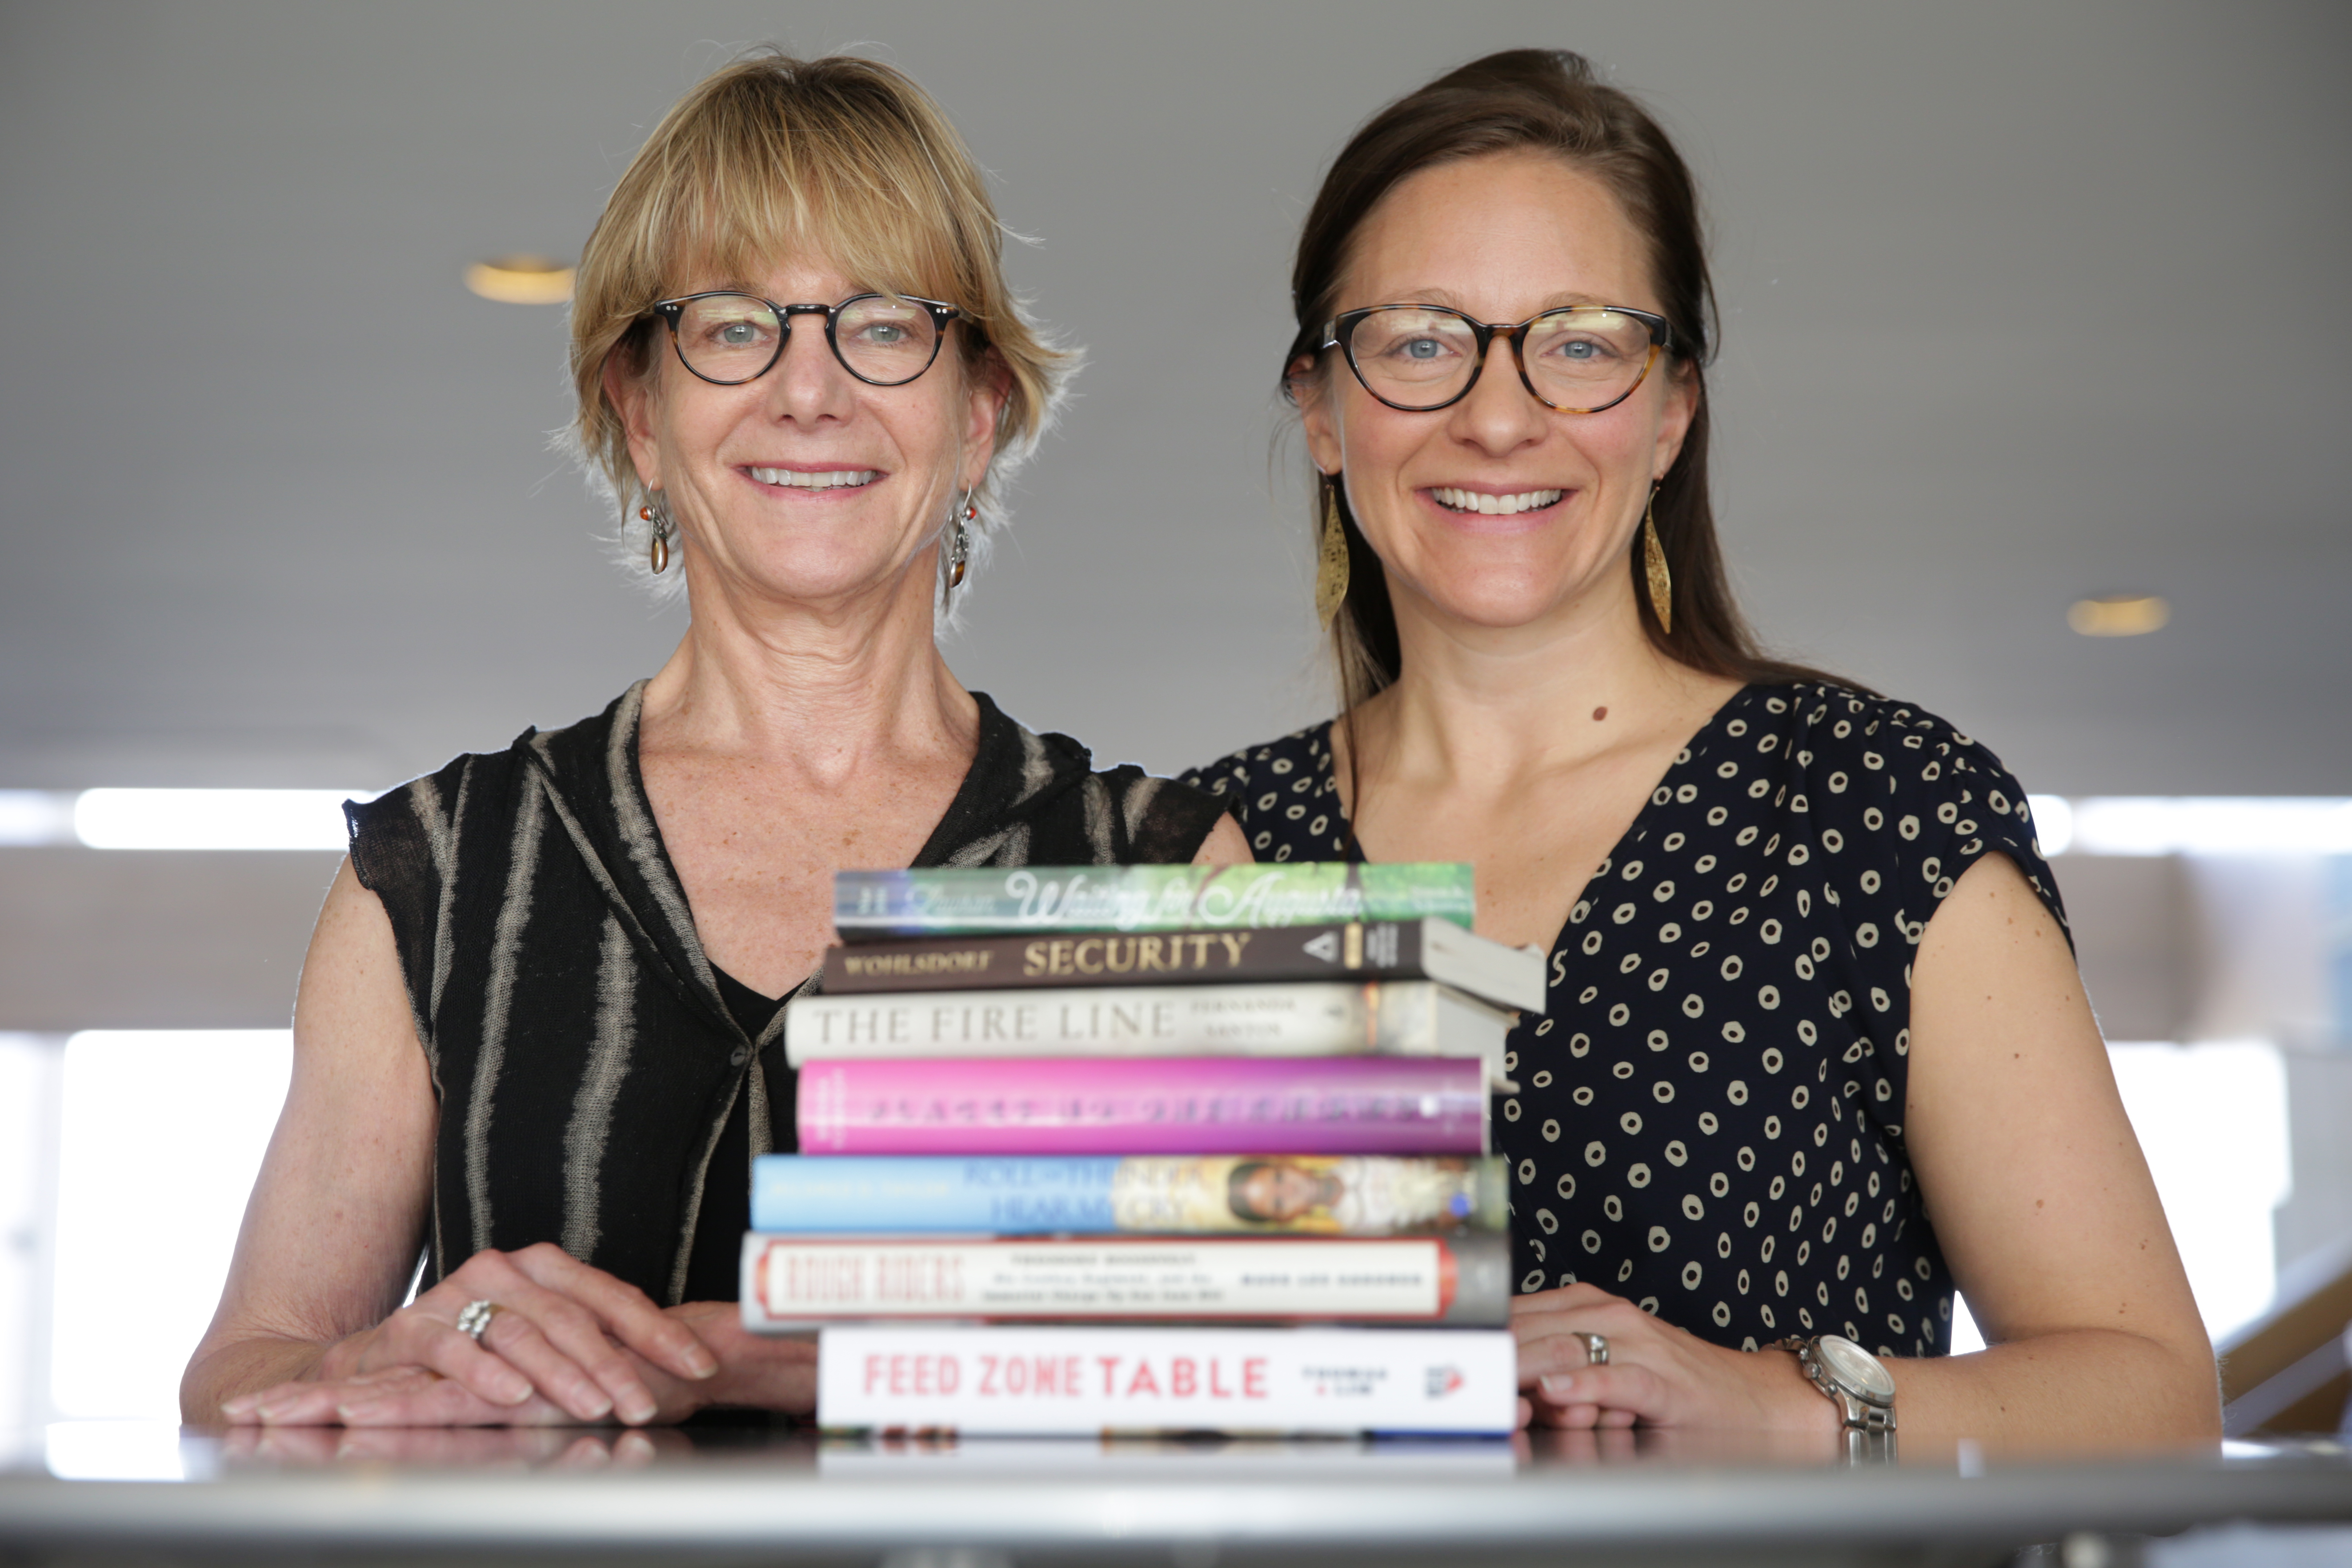 <p>Cathy Langerof the Tattered Cover bookstores and Nicole Magistro of The Bookworm inEdwards.</p>